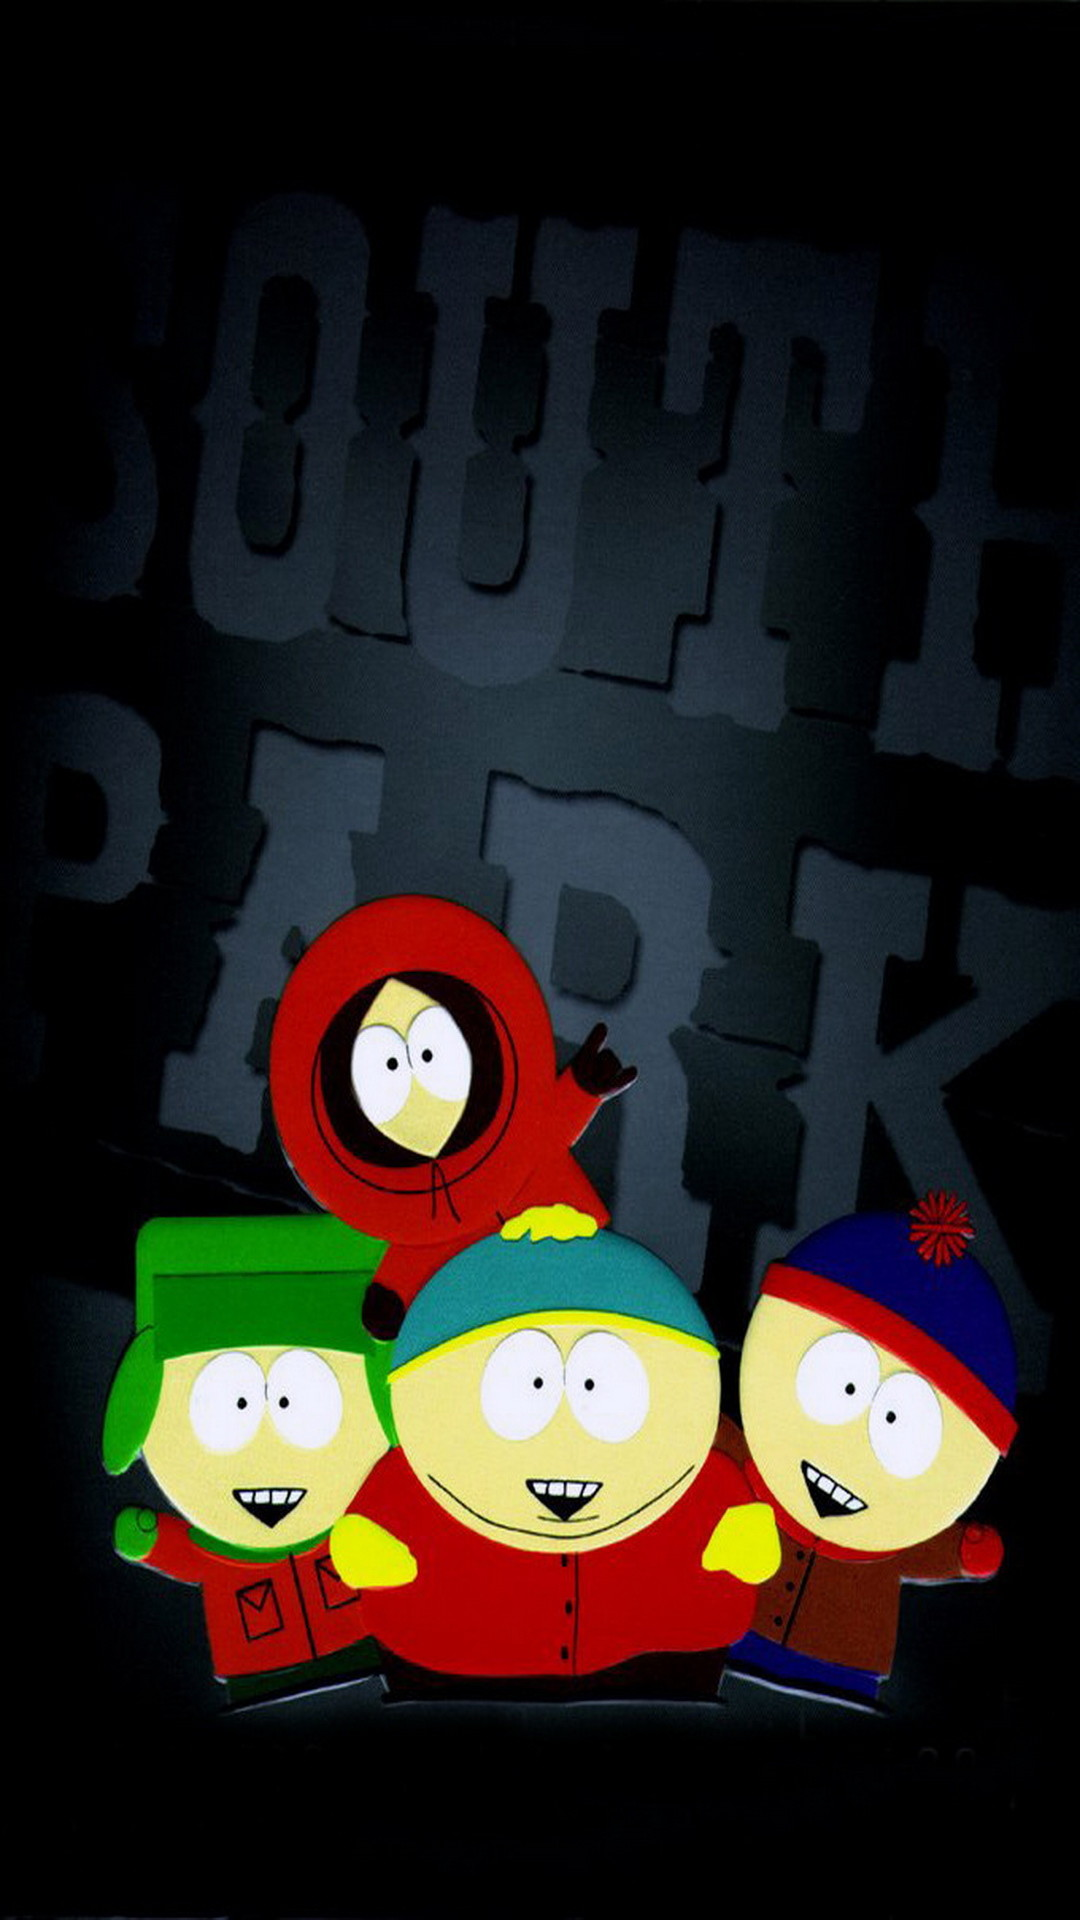 1080x1920 South Park iPhone 6 Wallpapers HD Wallpapers and iPhone 6 iPhone 6